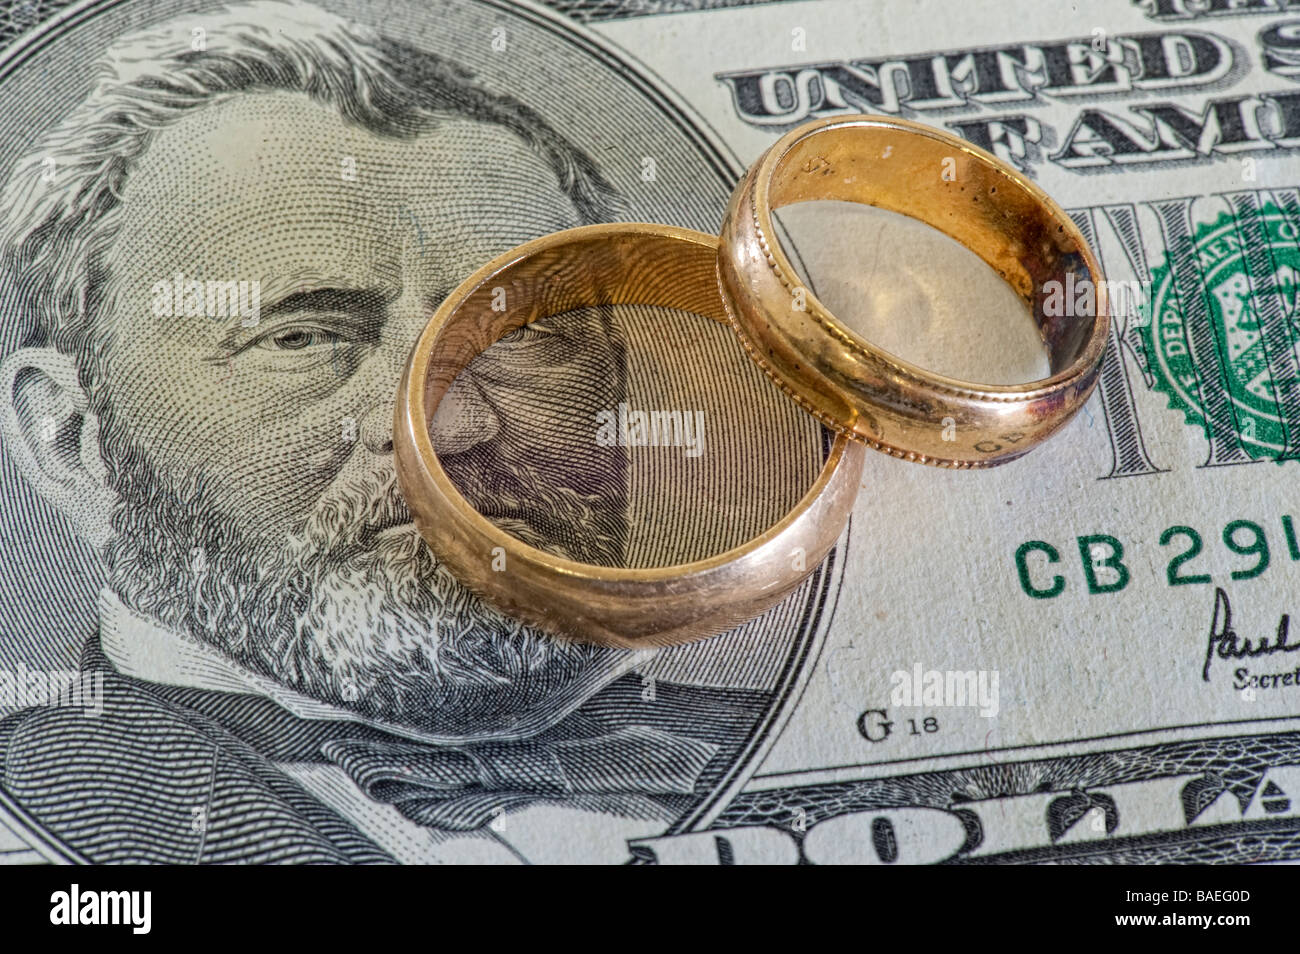 two wedding bands on $50.00 bill - Stock Image